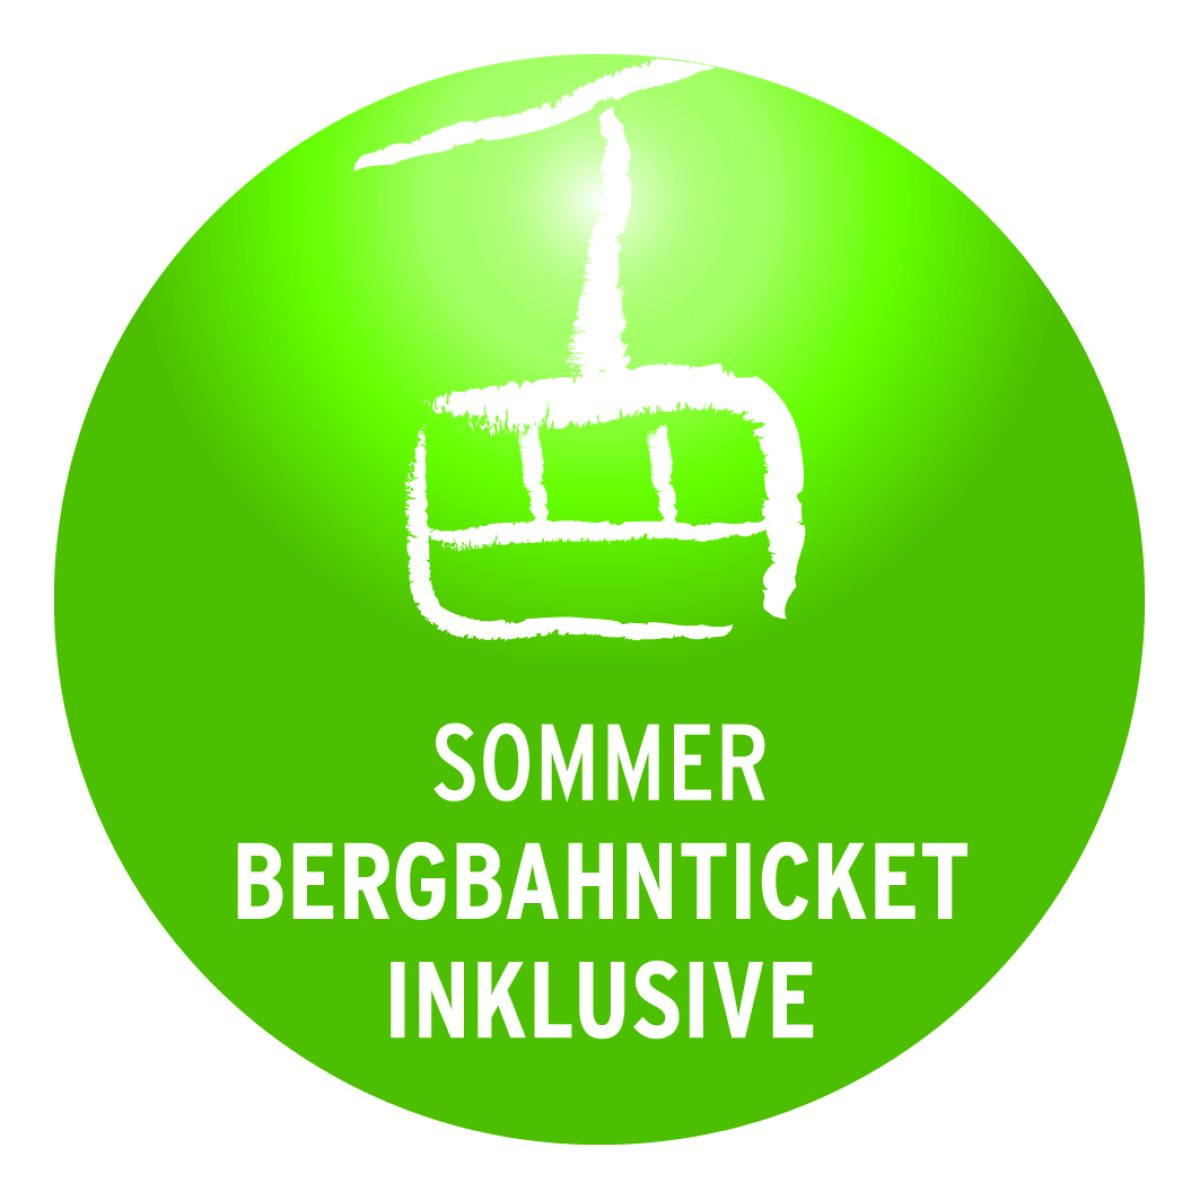 Sommer Bergbahnticket inklusive